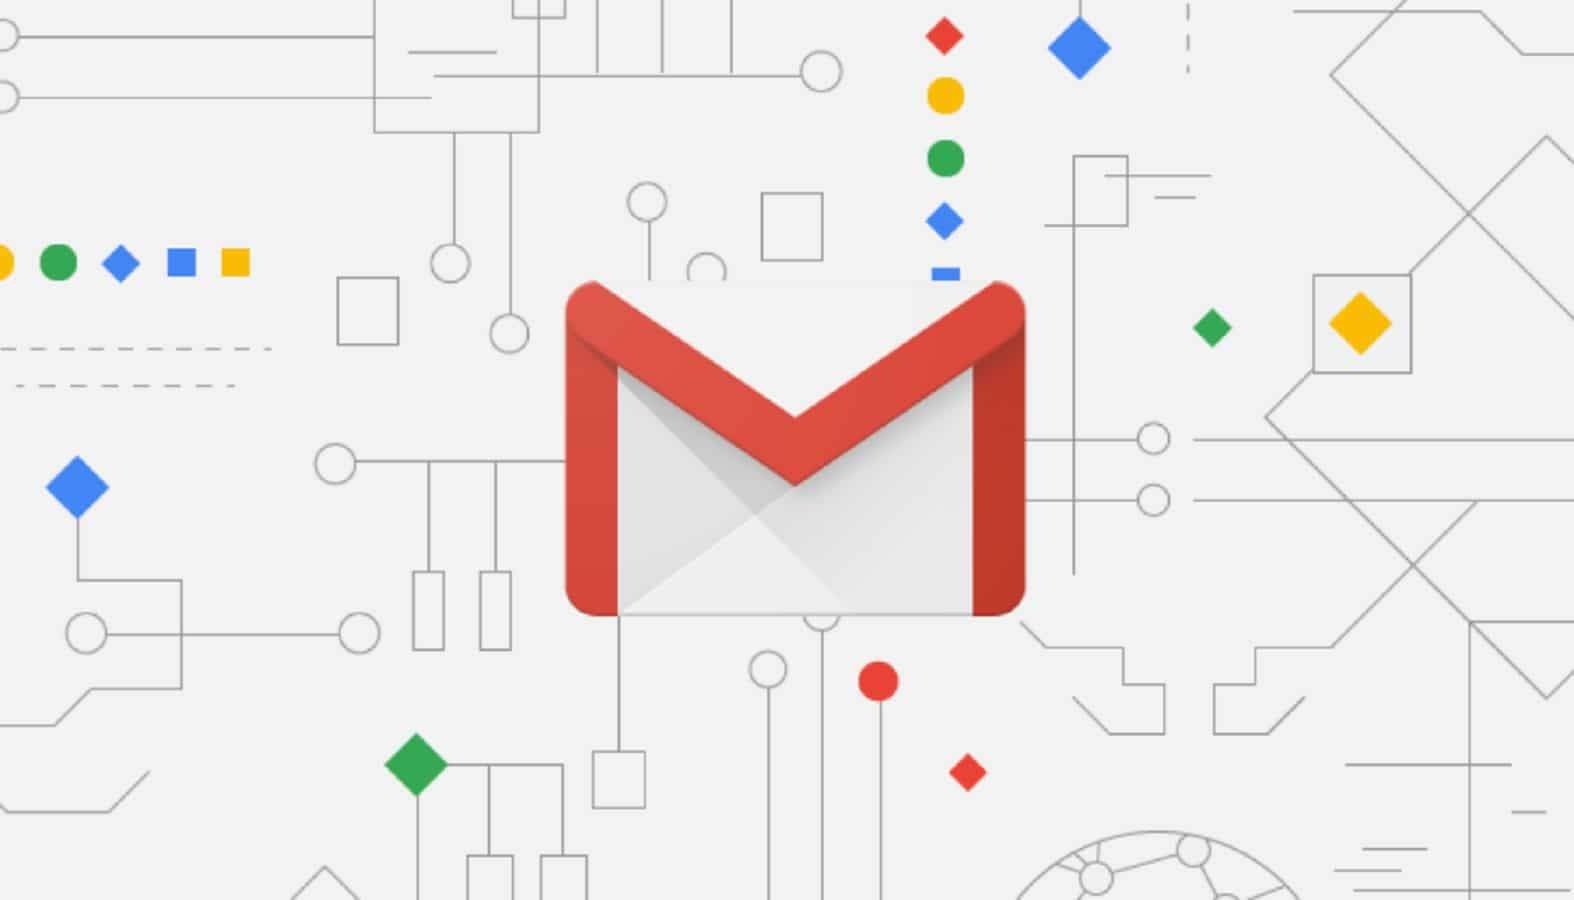 google gmail icon being shown on circuitry background